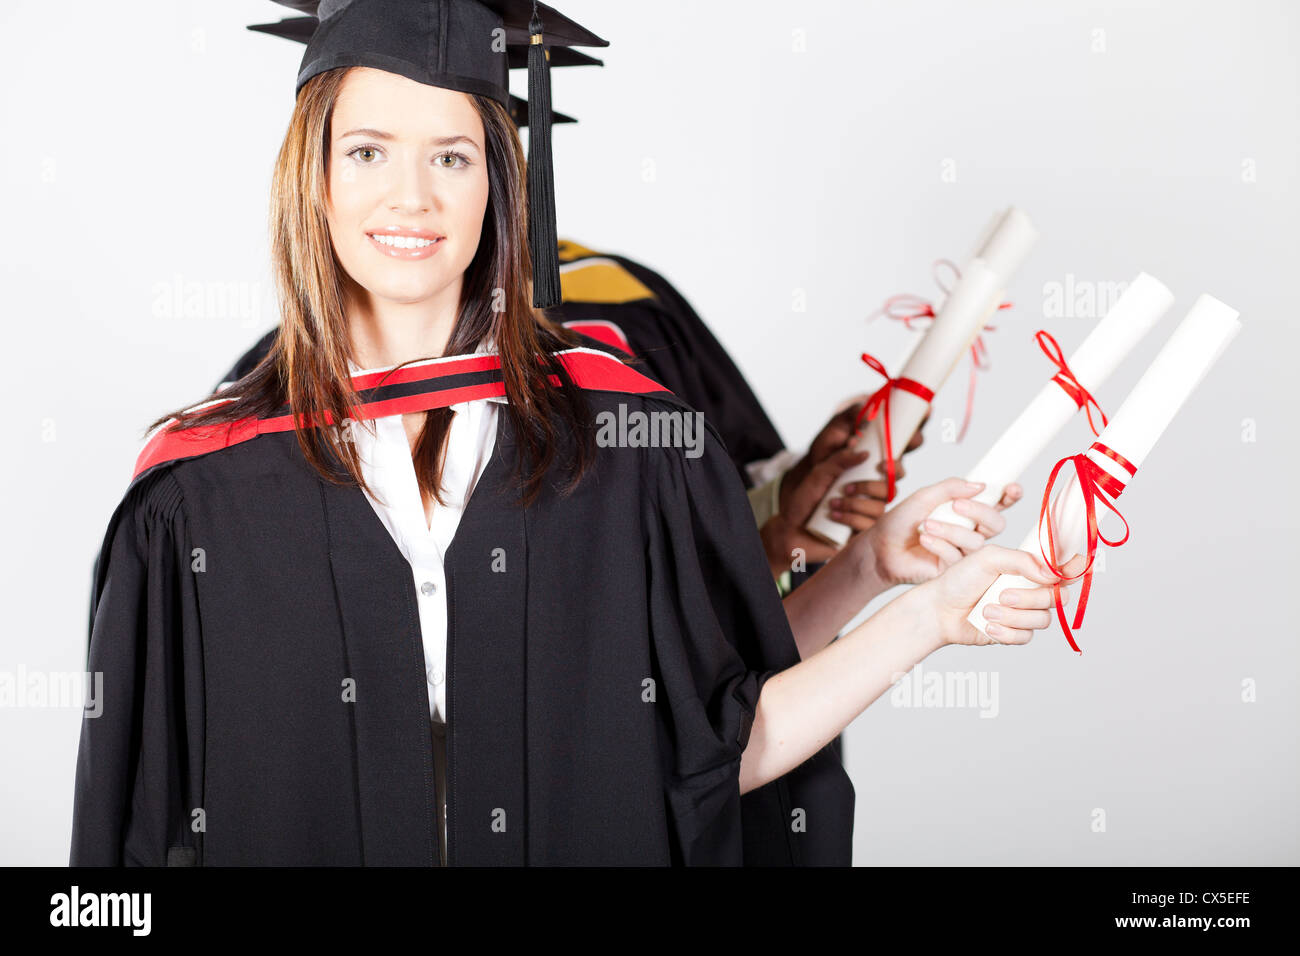 graduates holding diploma at graduation - Stock Image